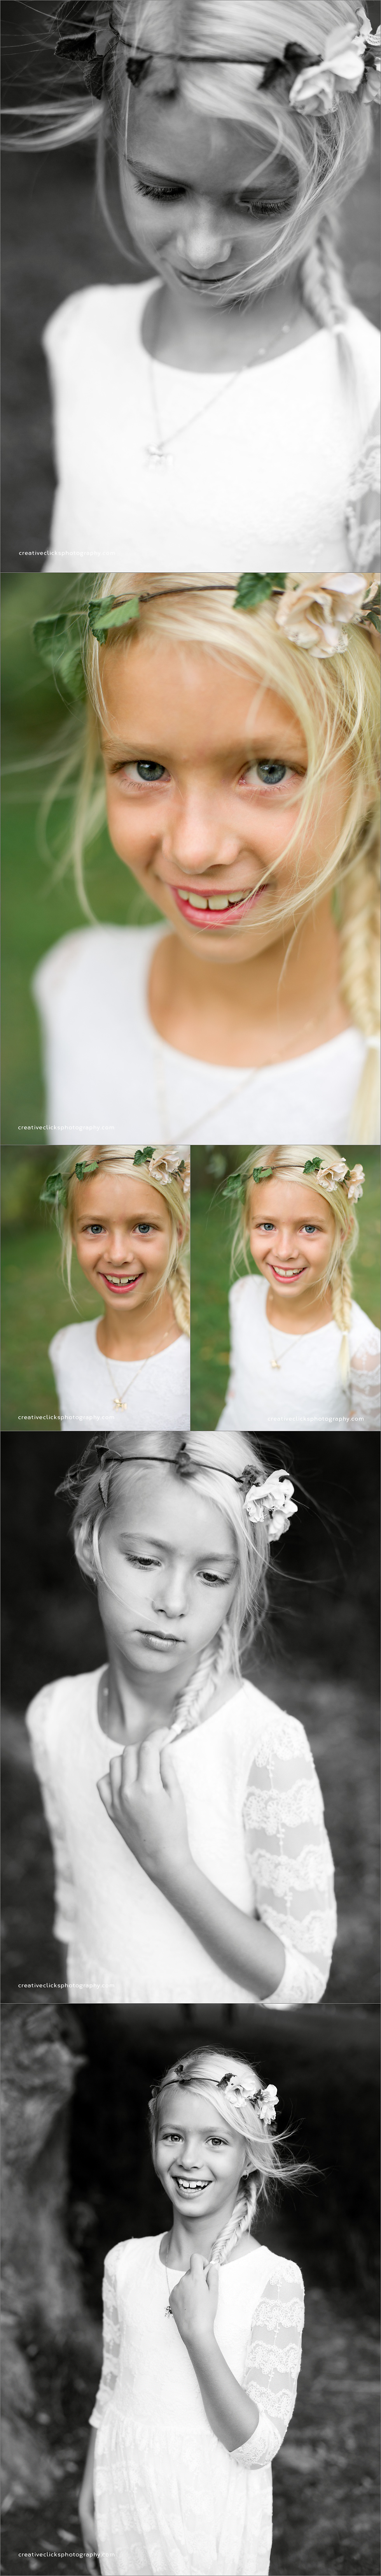 child photography professional niagara child photographer